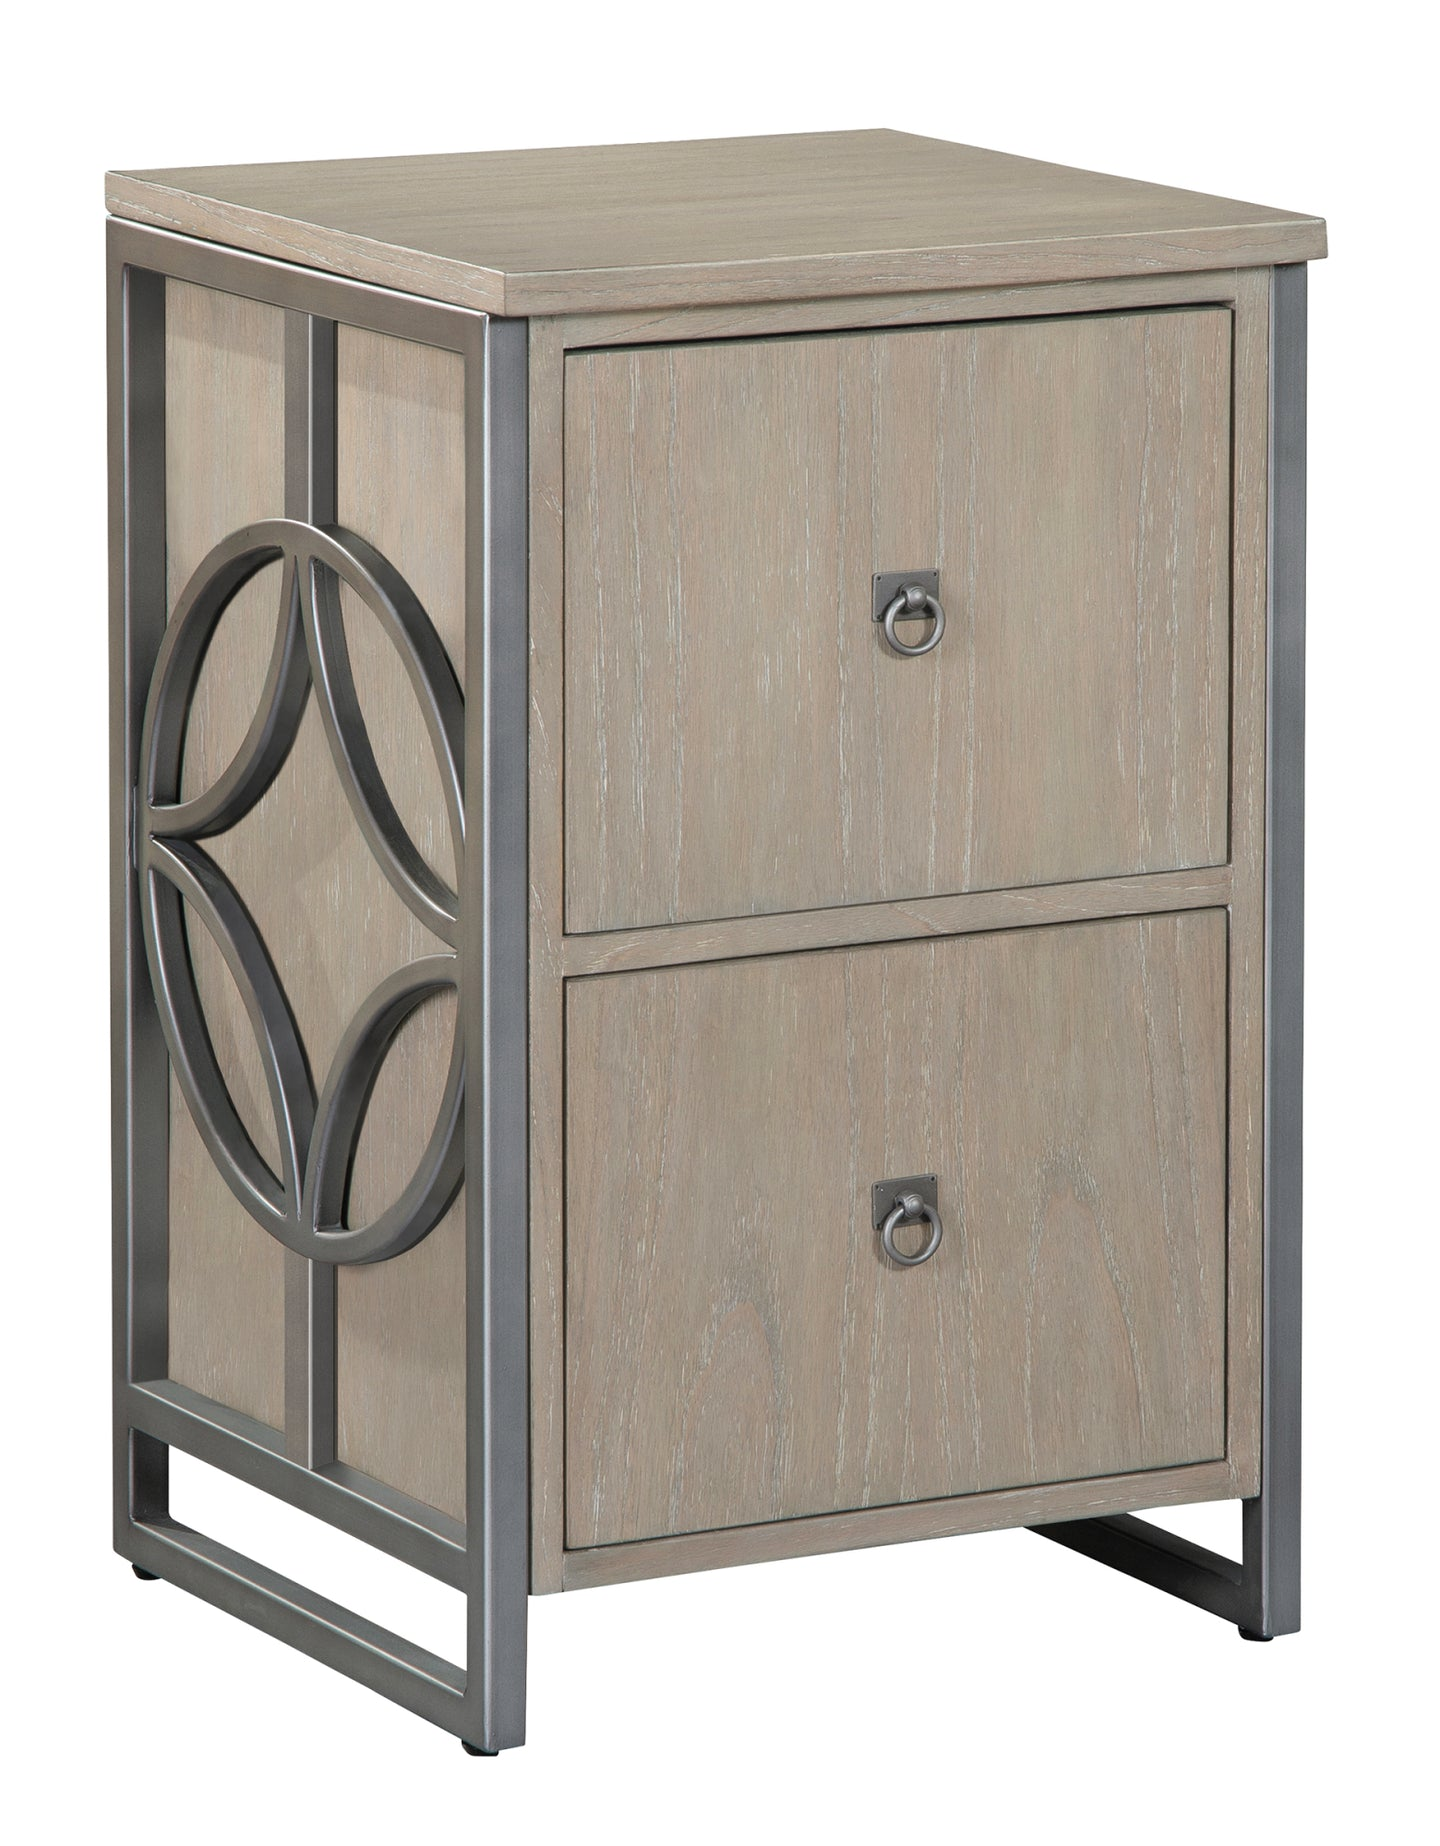 Hekman Office At Home Miami File Cabinet 27988 - Curios And More